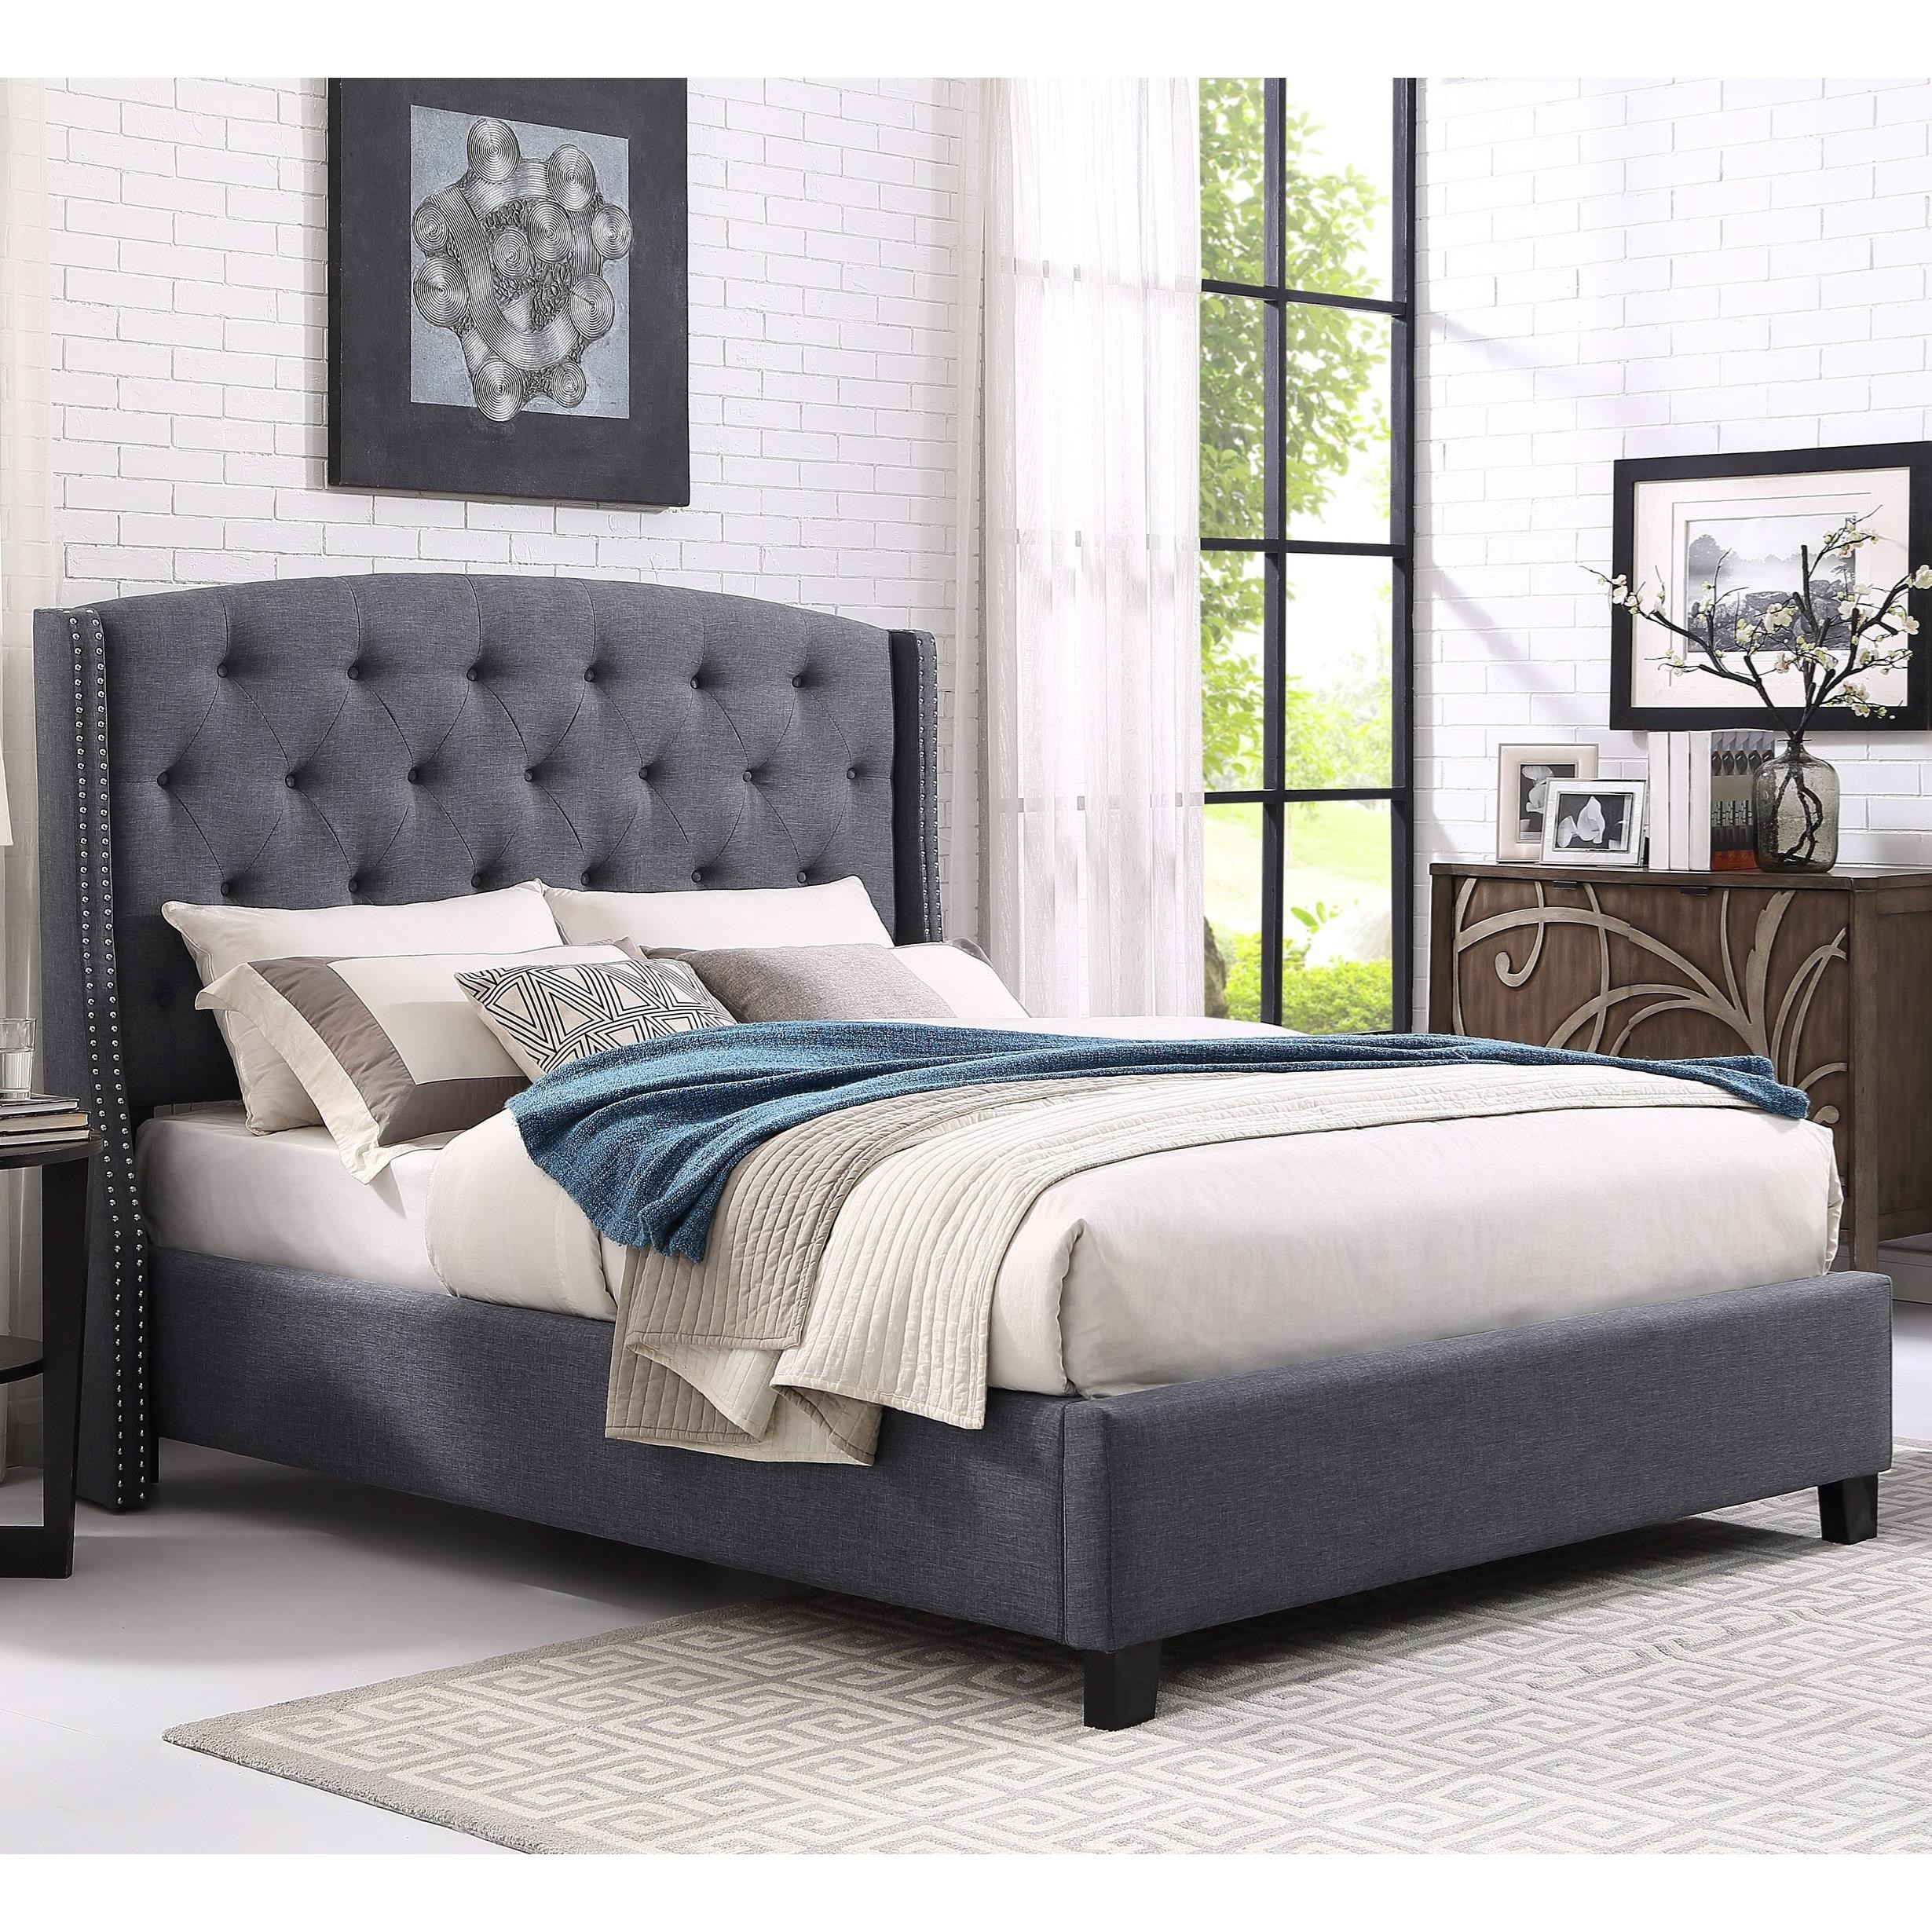 Eva Upholstered Queen Bed by Crown Mark at Northeast Factory Direct